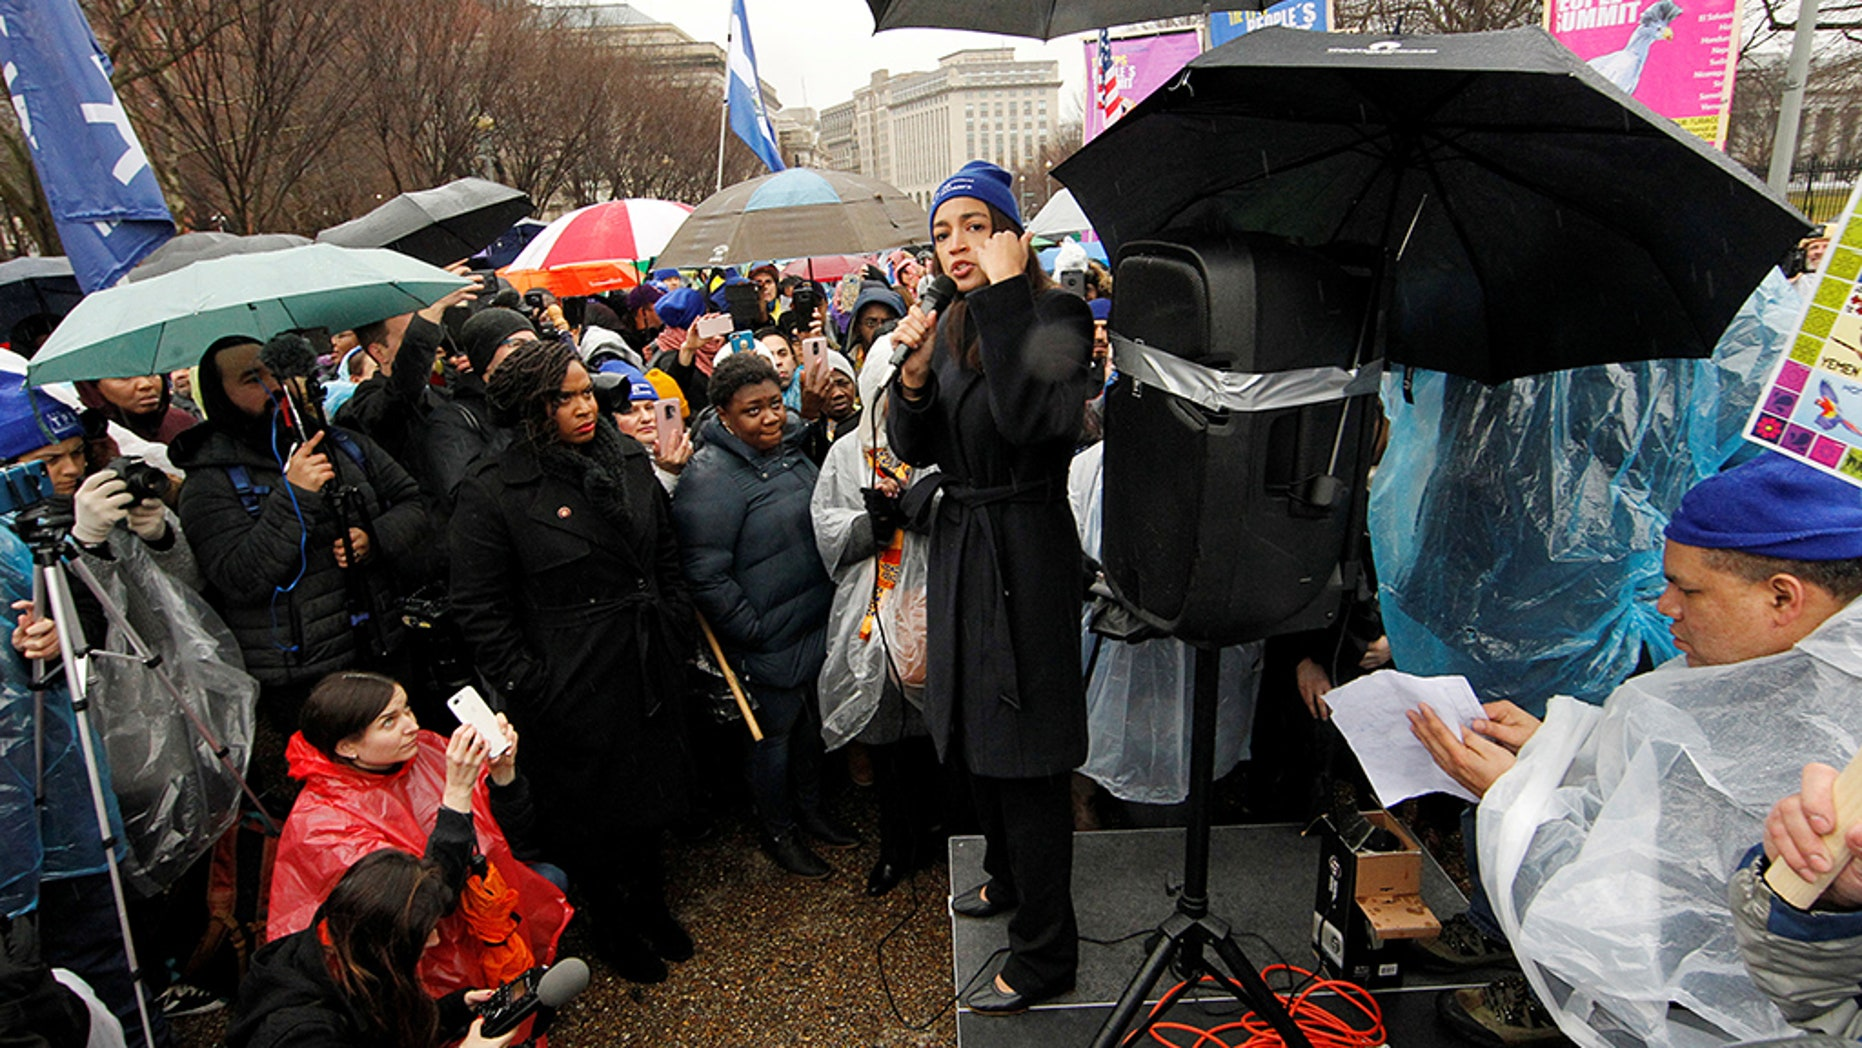 "U.S. Rep. Alexandria Ocasio-Cortez (D-NY) addresses immigration rights activists during a rally calling for ""permanent protections for Temporary Protected Status (TPS) holders"" in front of the White House in Washington, U.S., February 12, 2019. REUTERS/Jim Bourg - RC13D2BE4BE0"